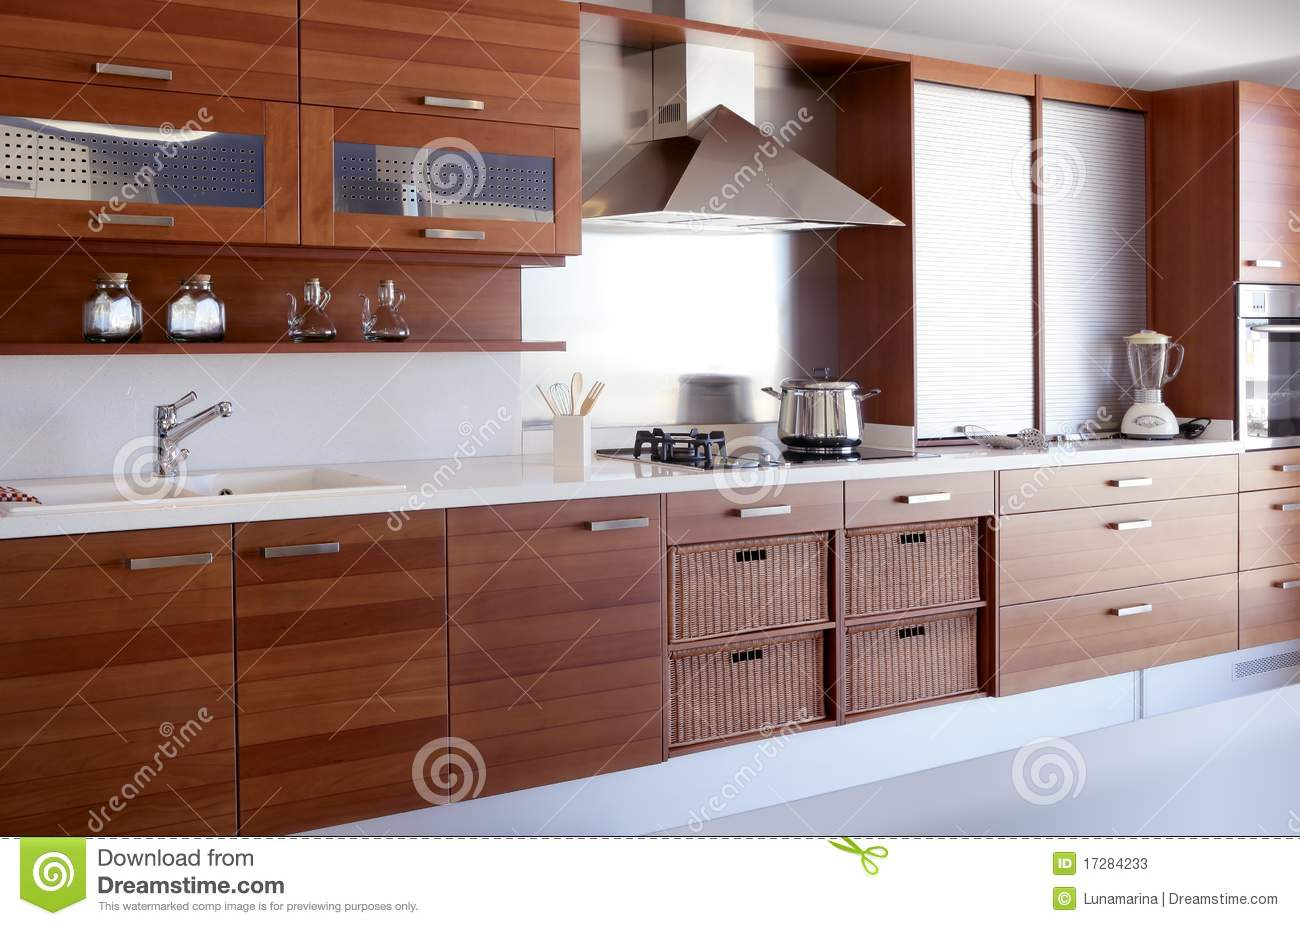 Cuisine En Bois Moderne red wood kitchen white kitchen bench stock image - image of